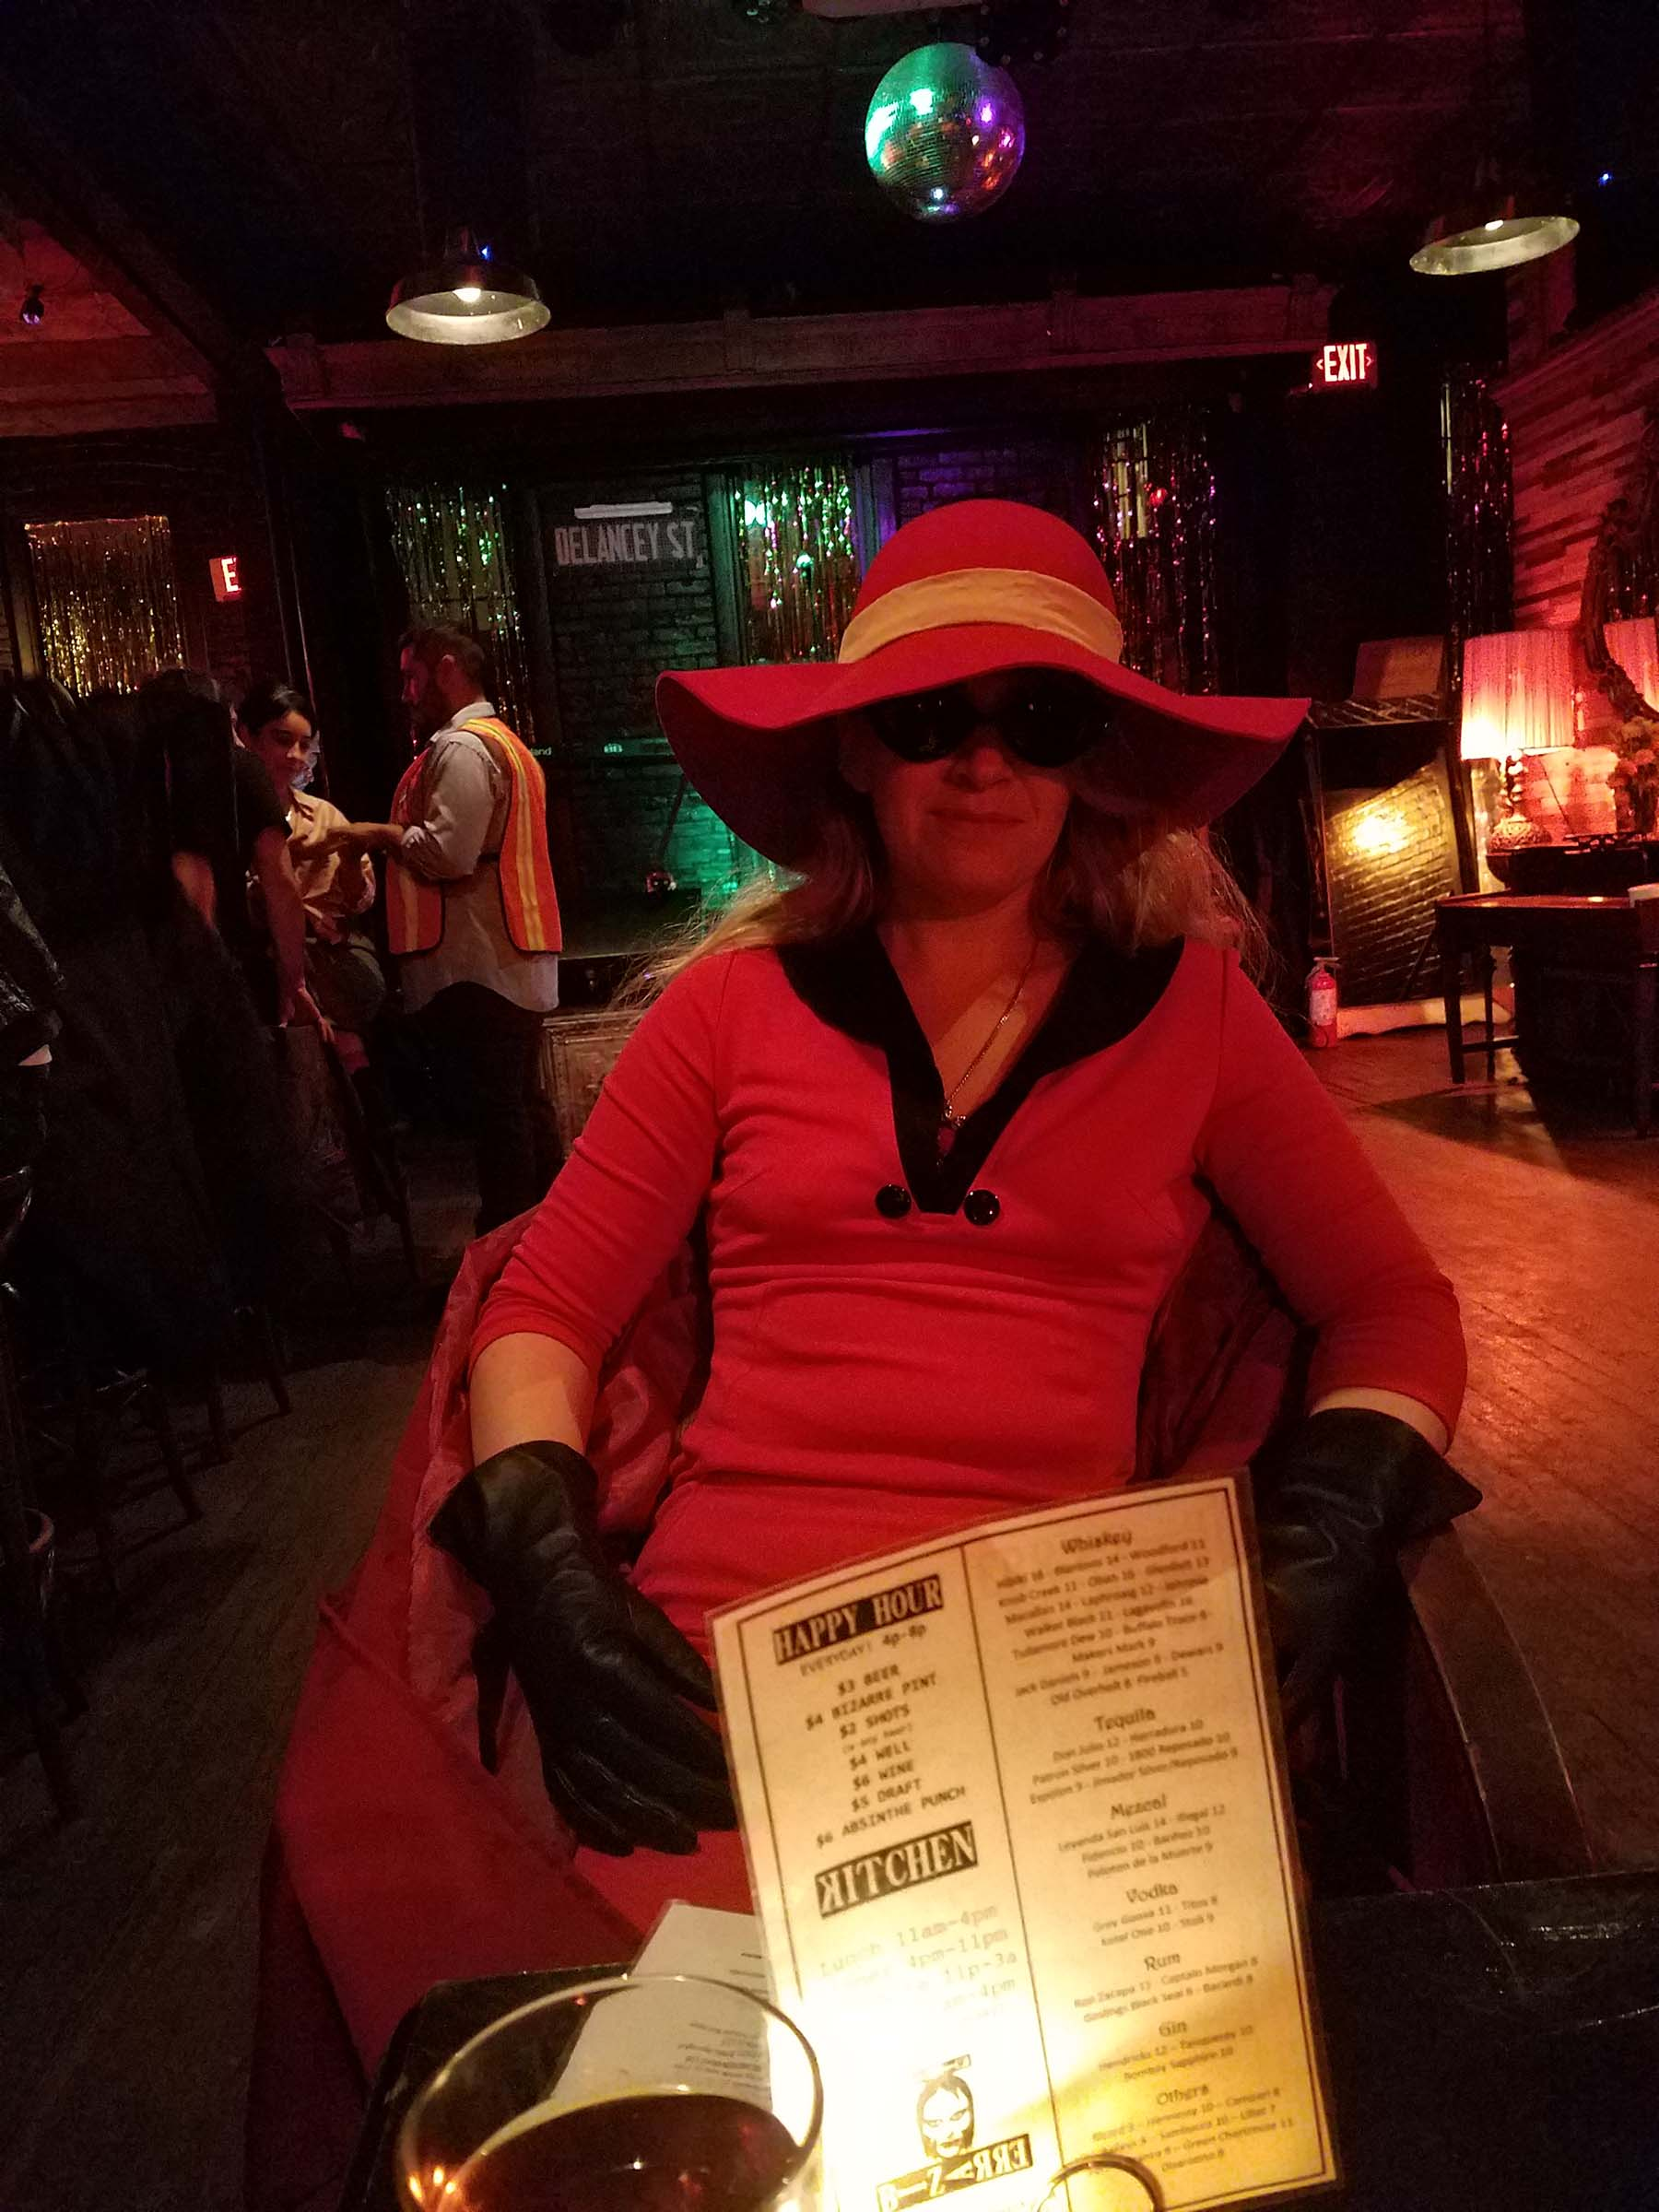 Sitting across the table in a dimly lit bar from a person wearing a red hat and red dress, gloves, and dark sunglasses.